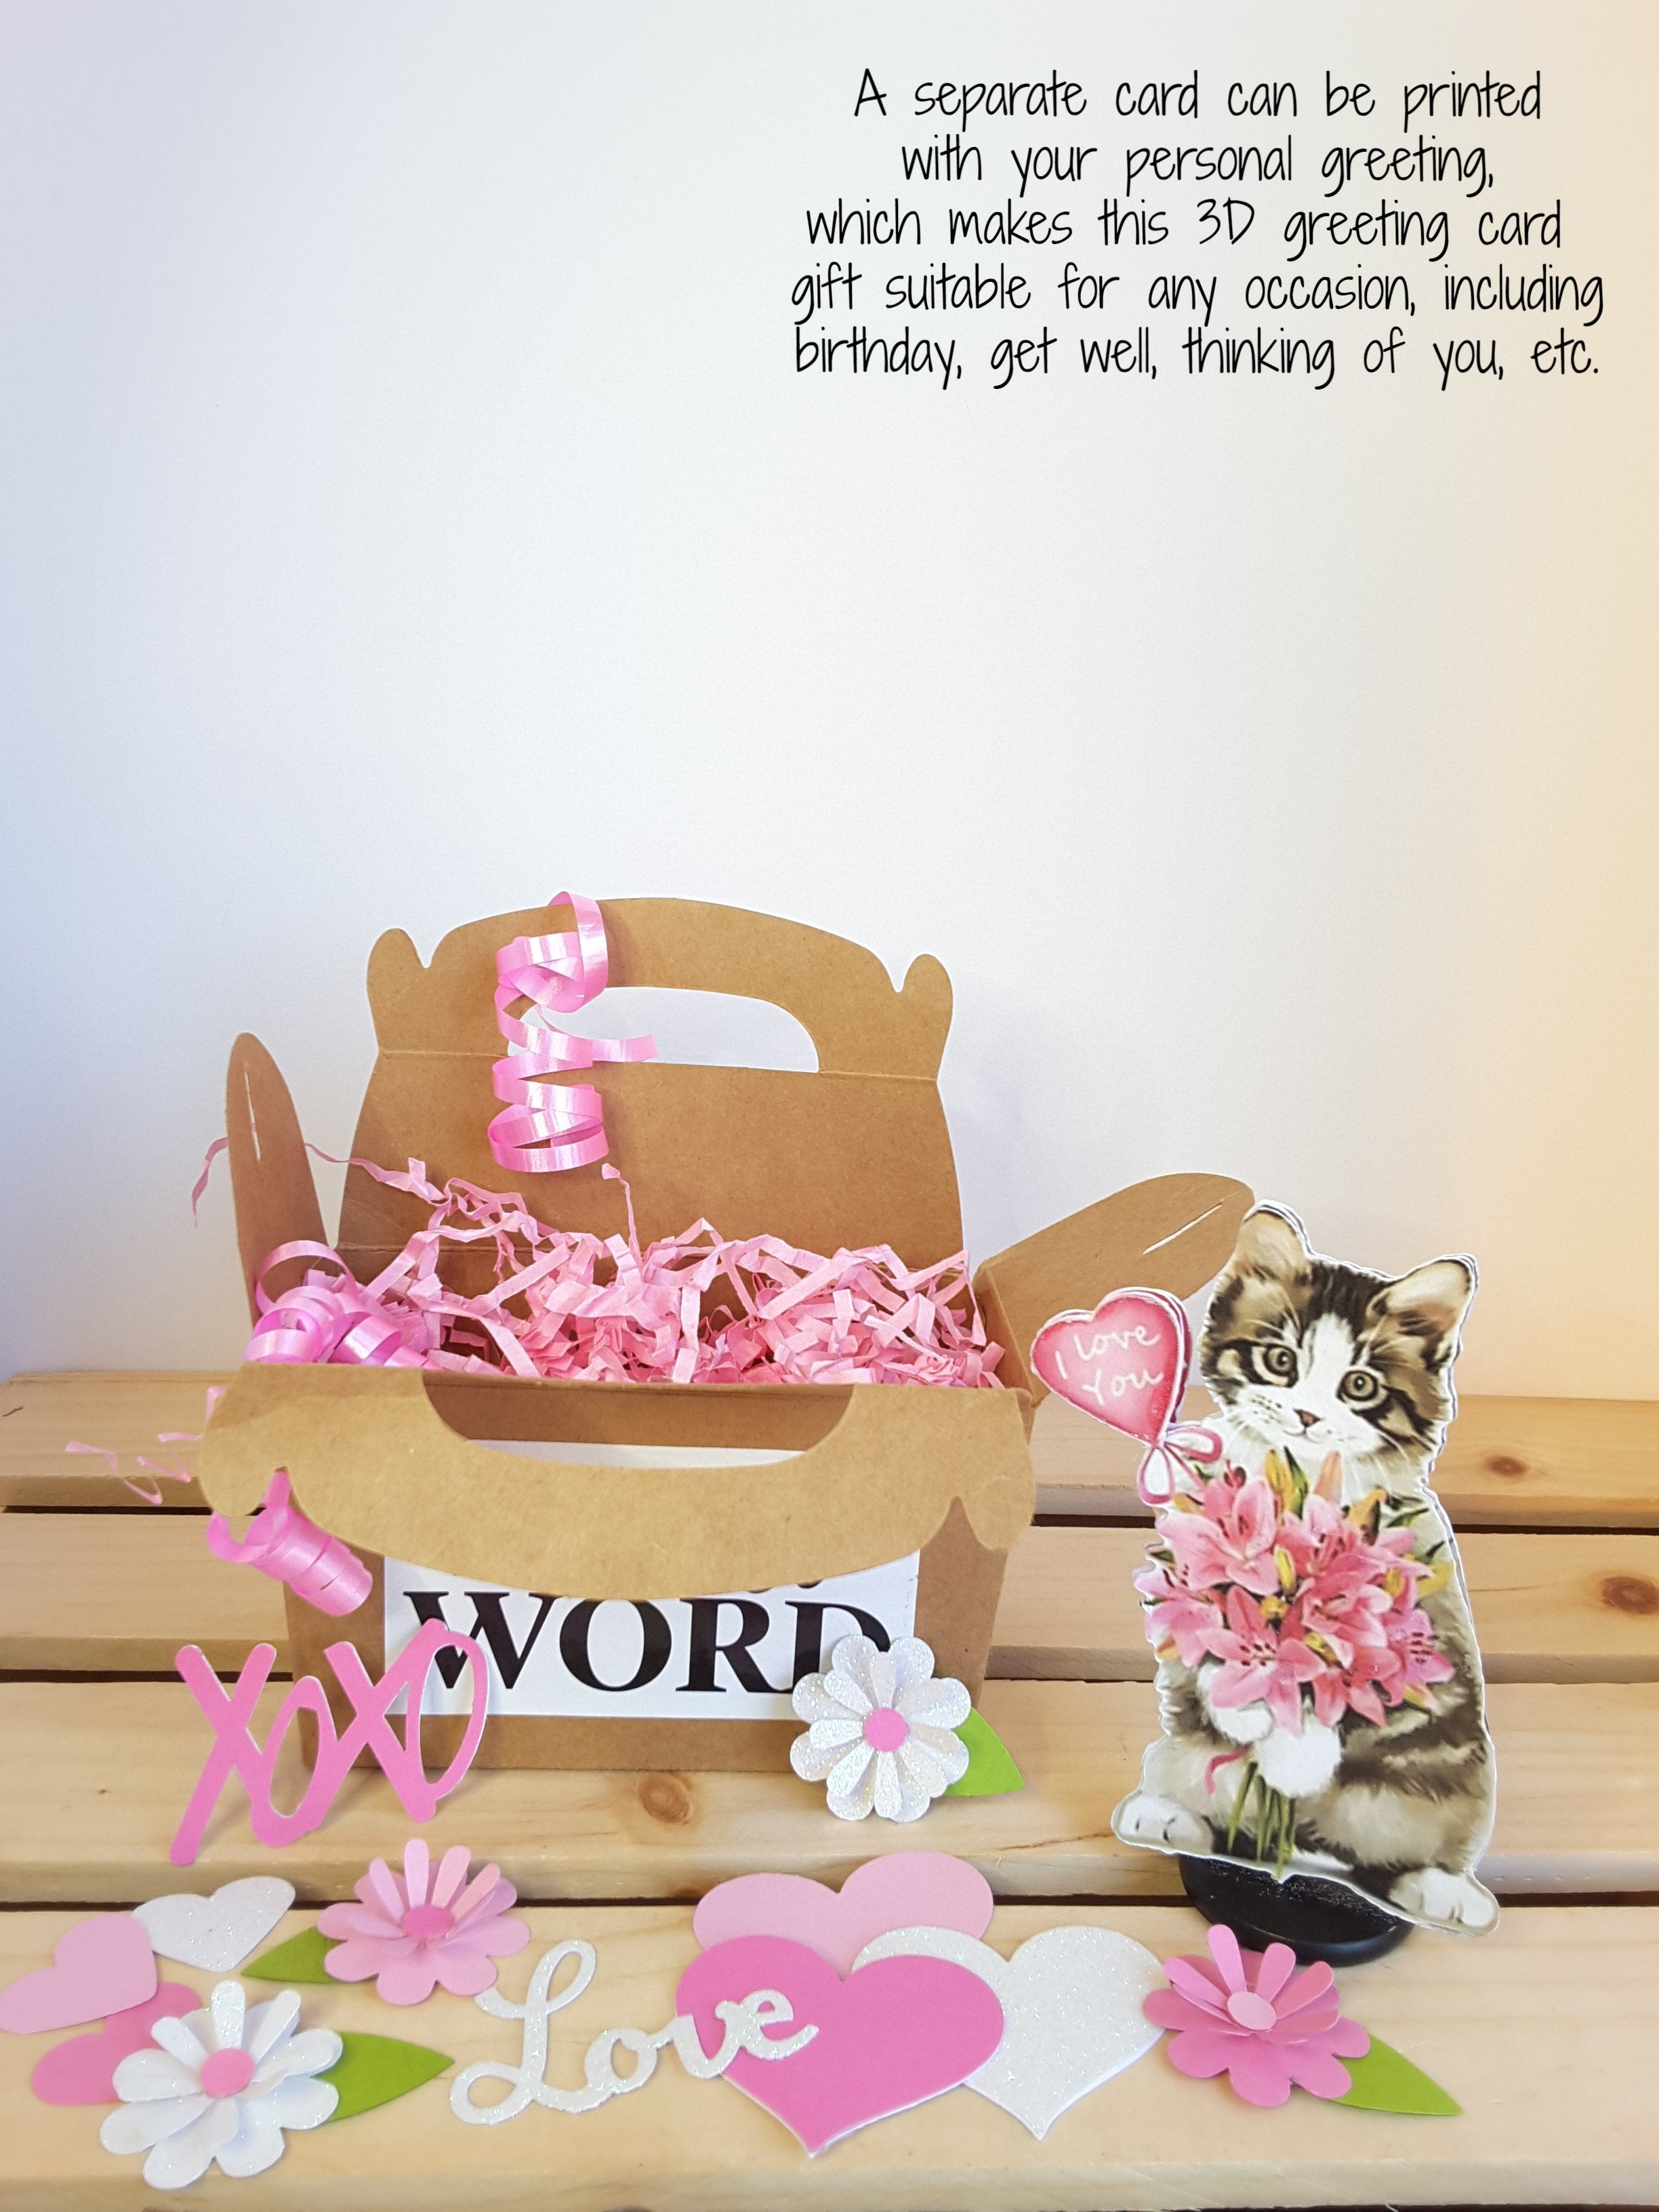 3-D kitten greeting card for all occasion